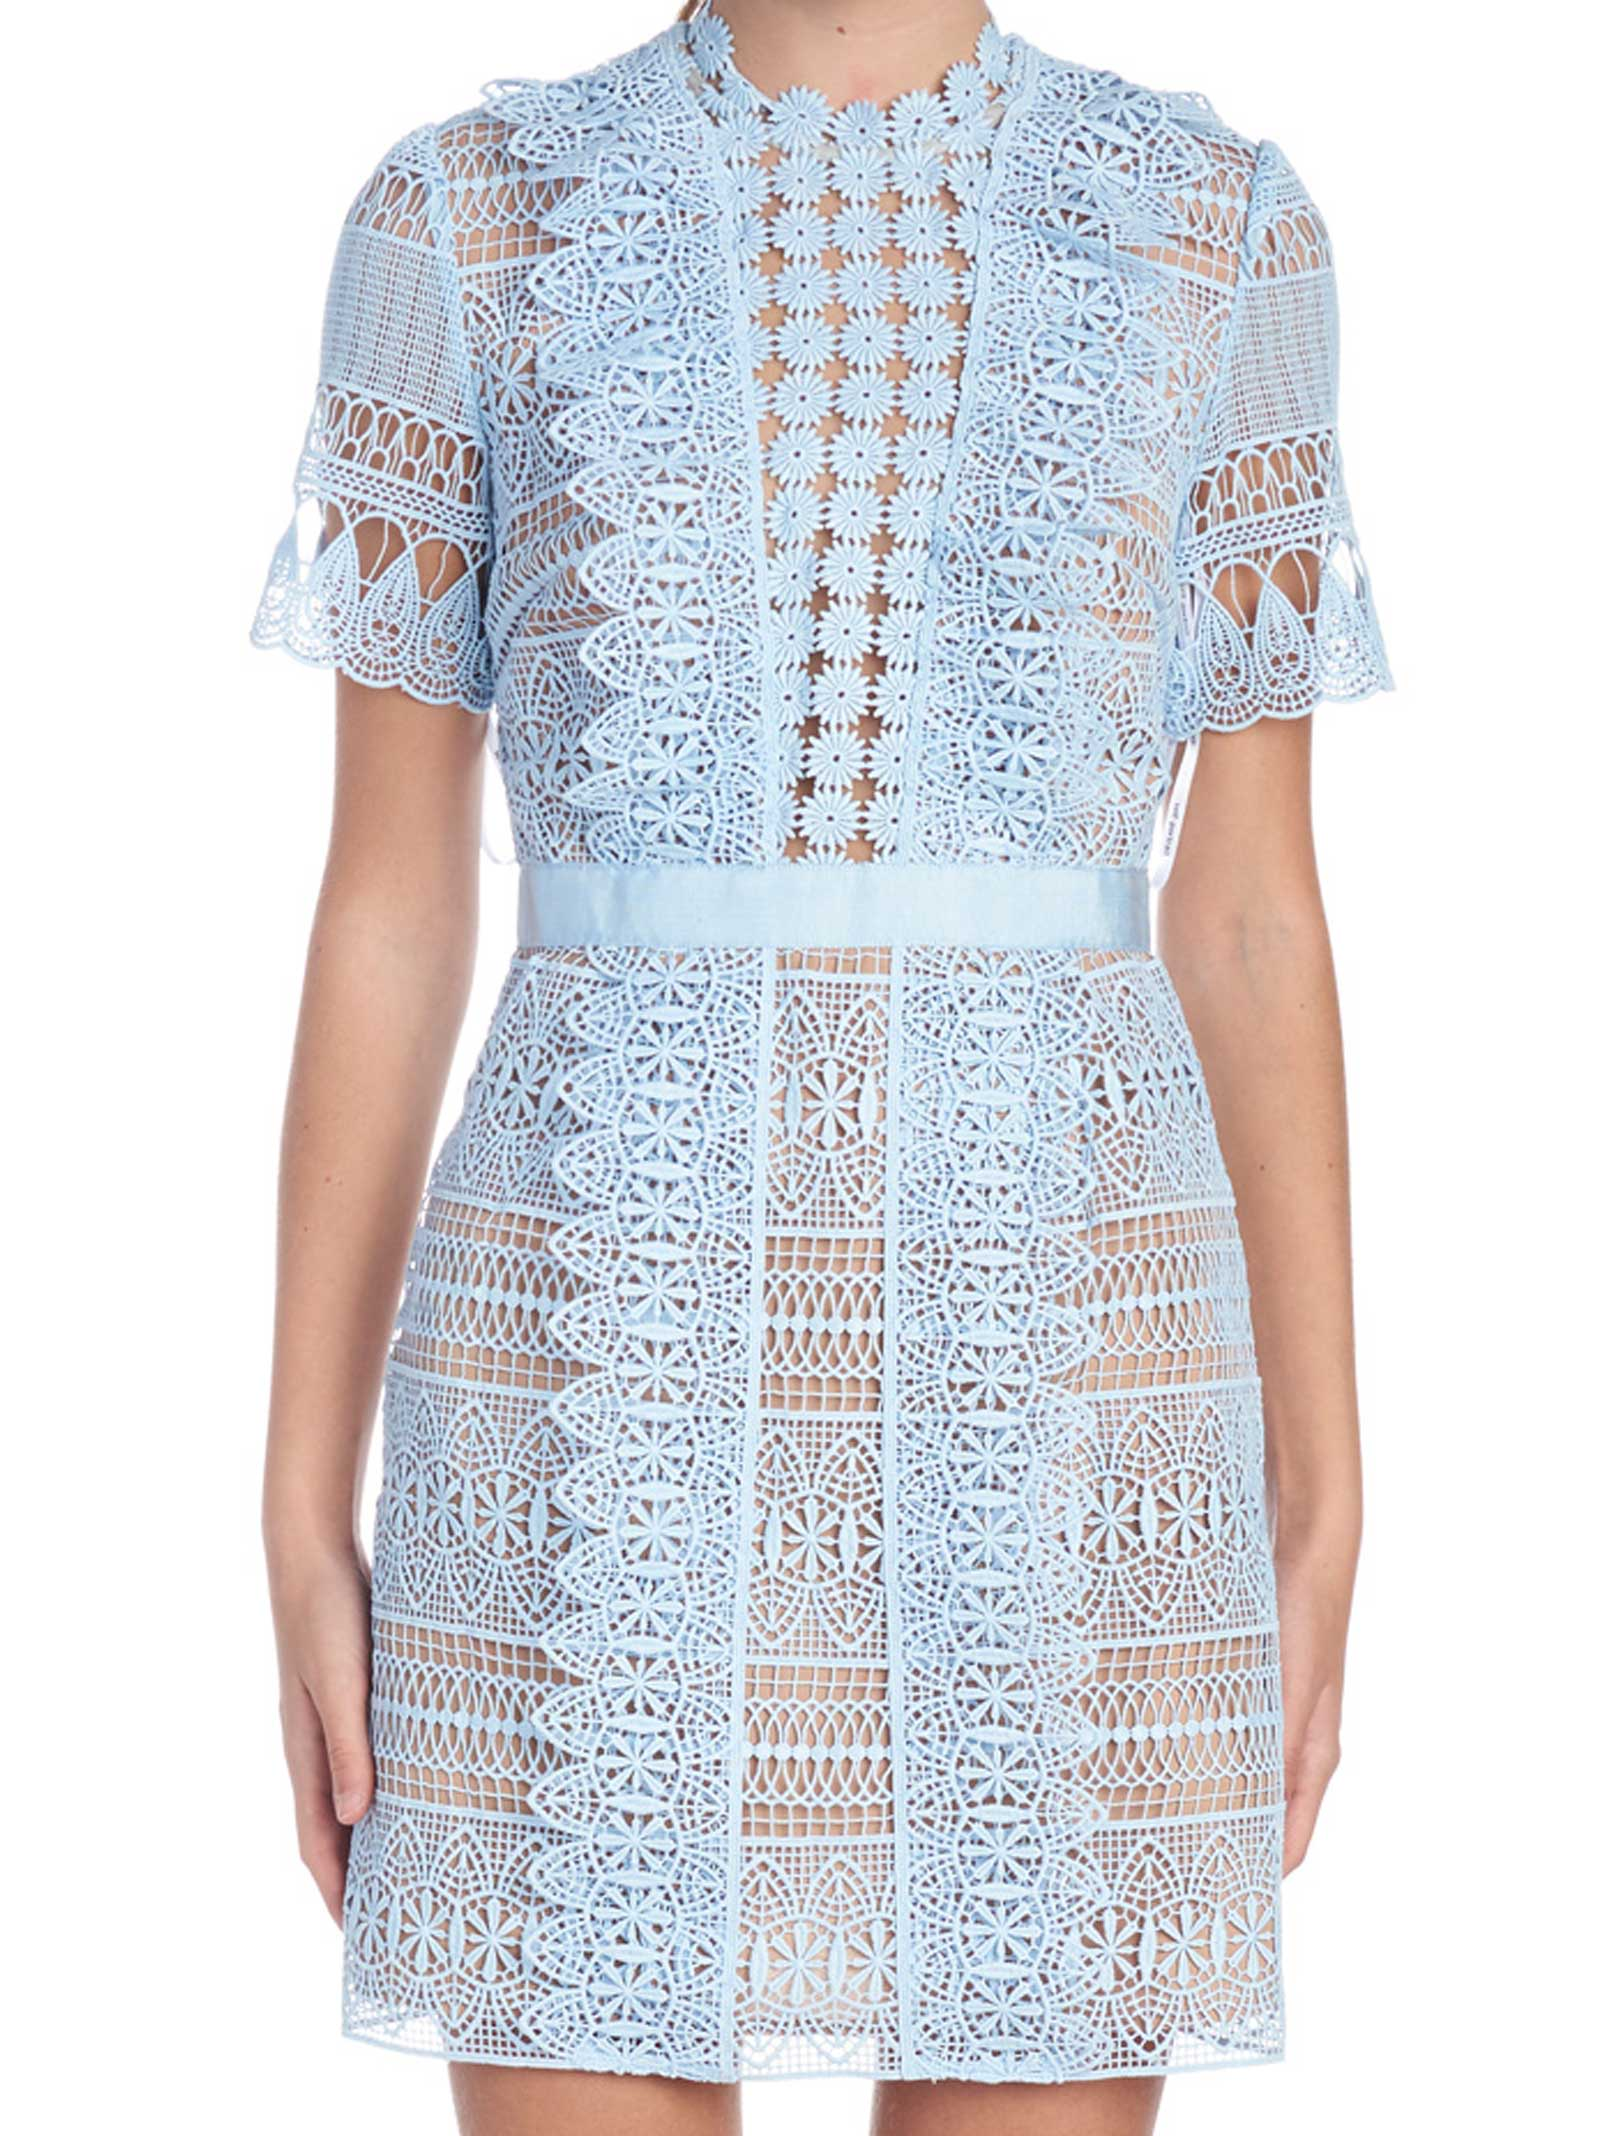 Self-portrait 'spiral Lace' Dress